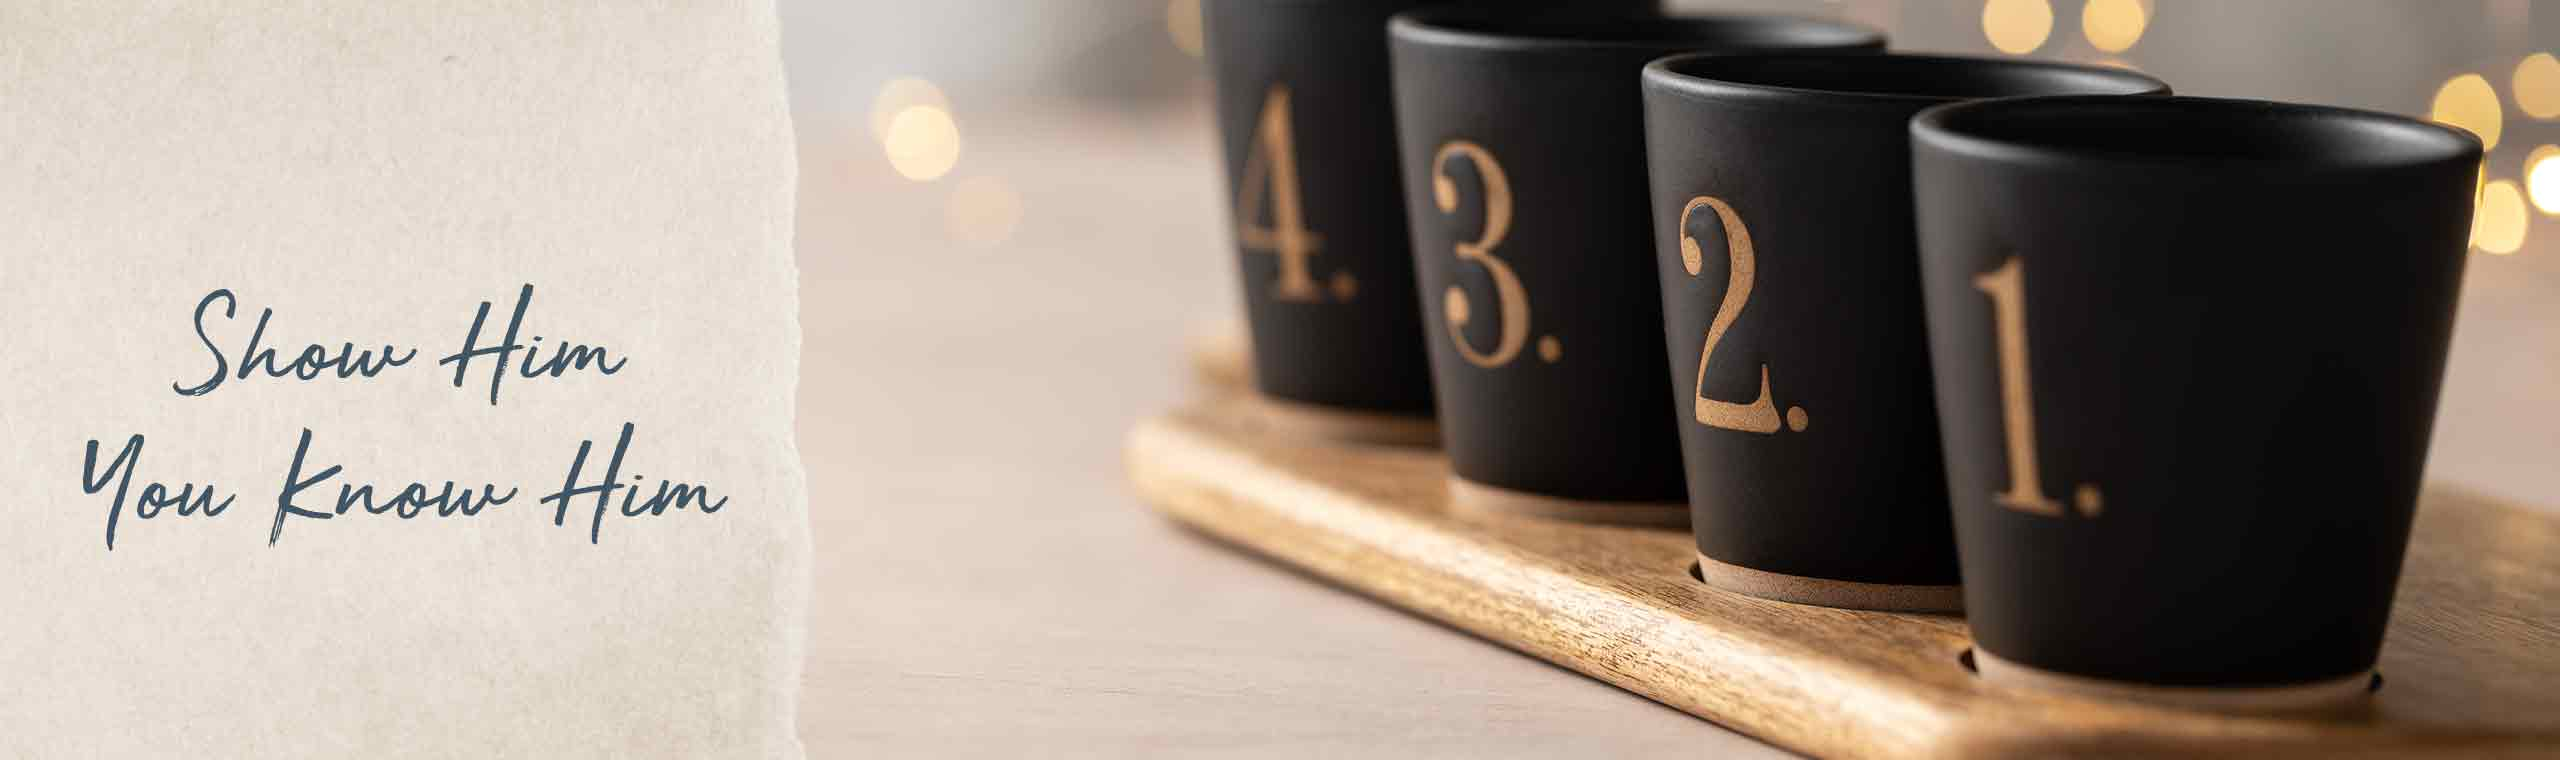 Show him you know him, coffe mugs with gold foil numbers printed on them